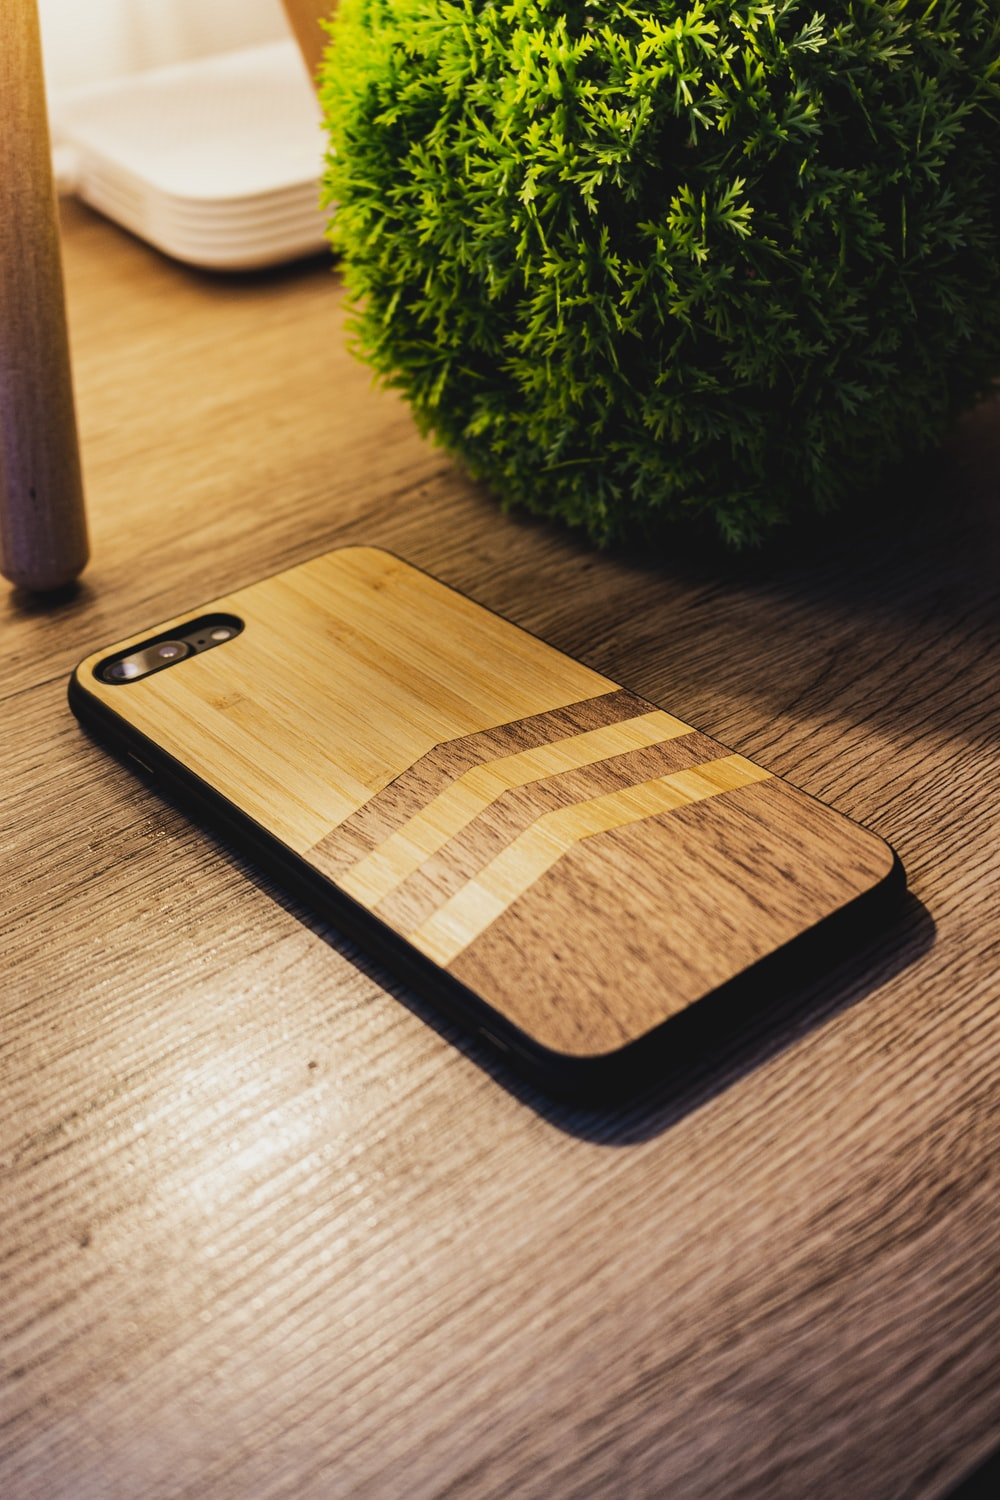 black iphone 7 on brown wooden table